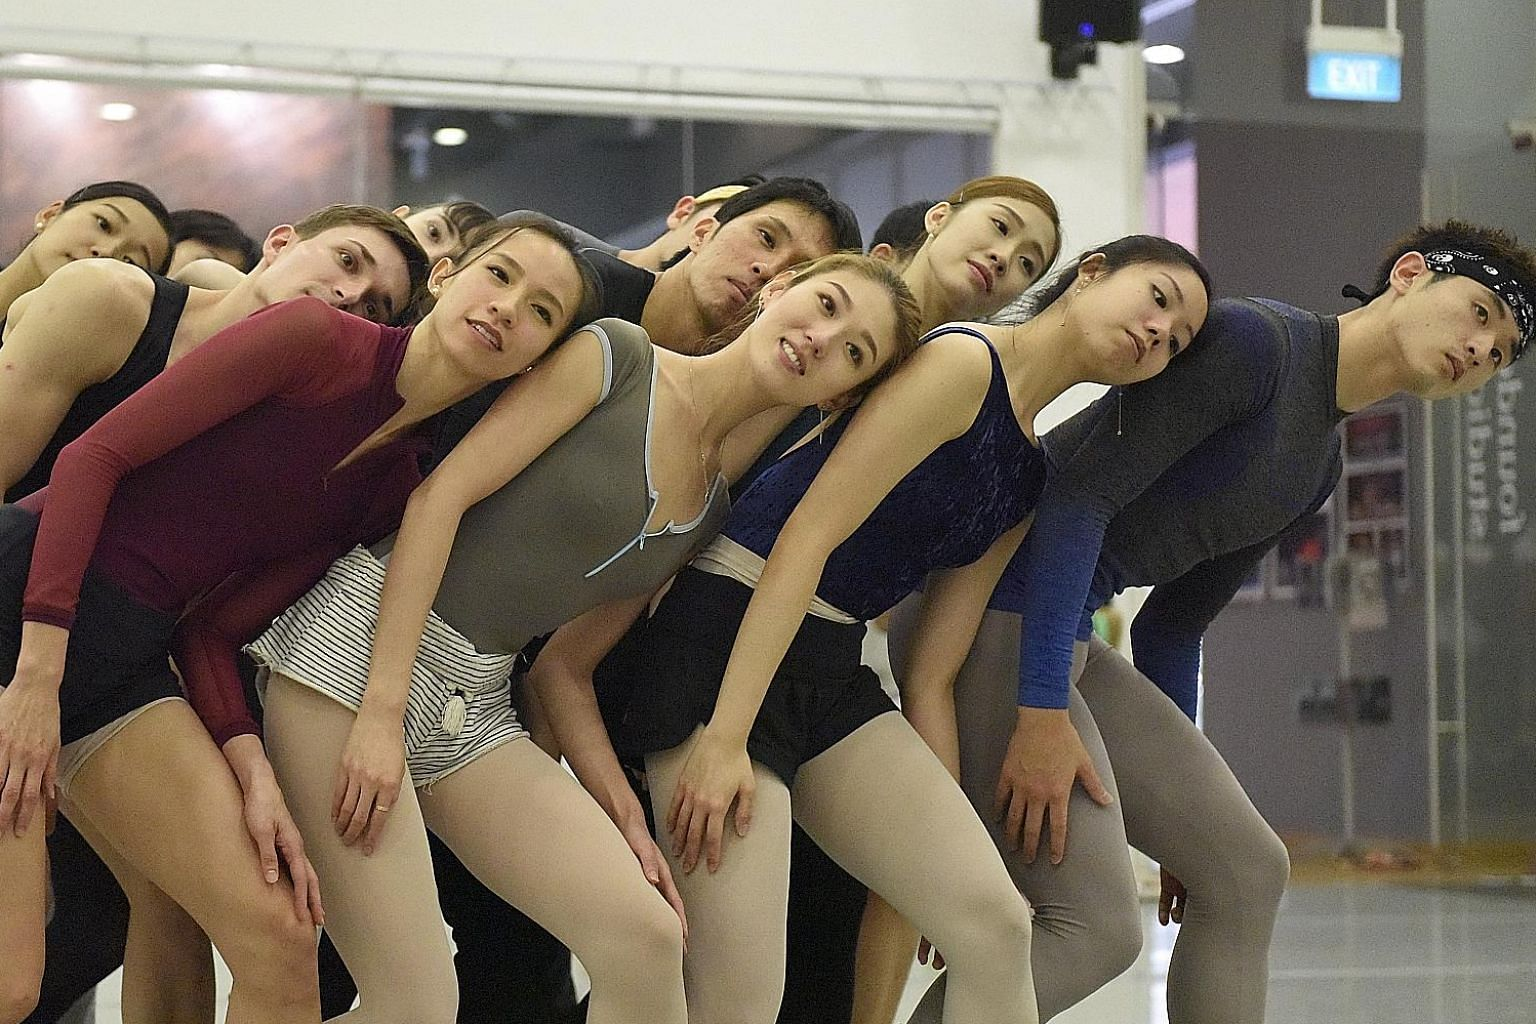 Singapore Dance Theatre dancers rehearse the 23-minute-long Evening Voices by acclaimed British choreographer Timothy Rushton.